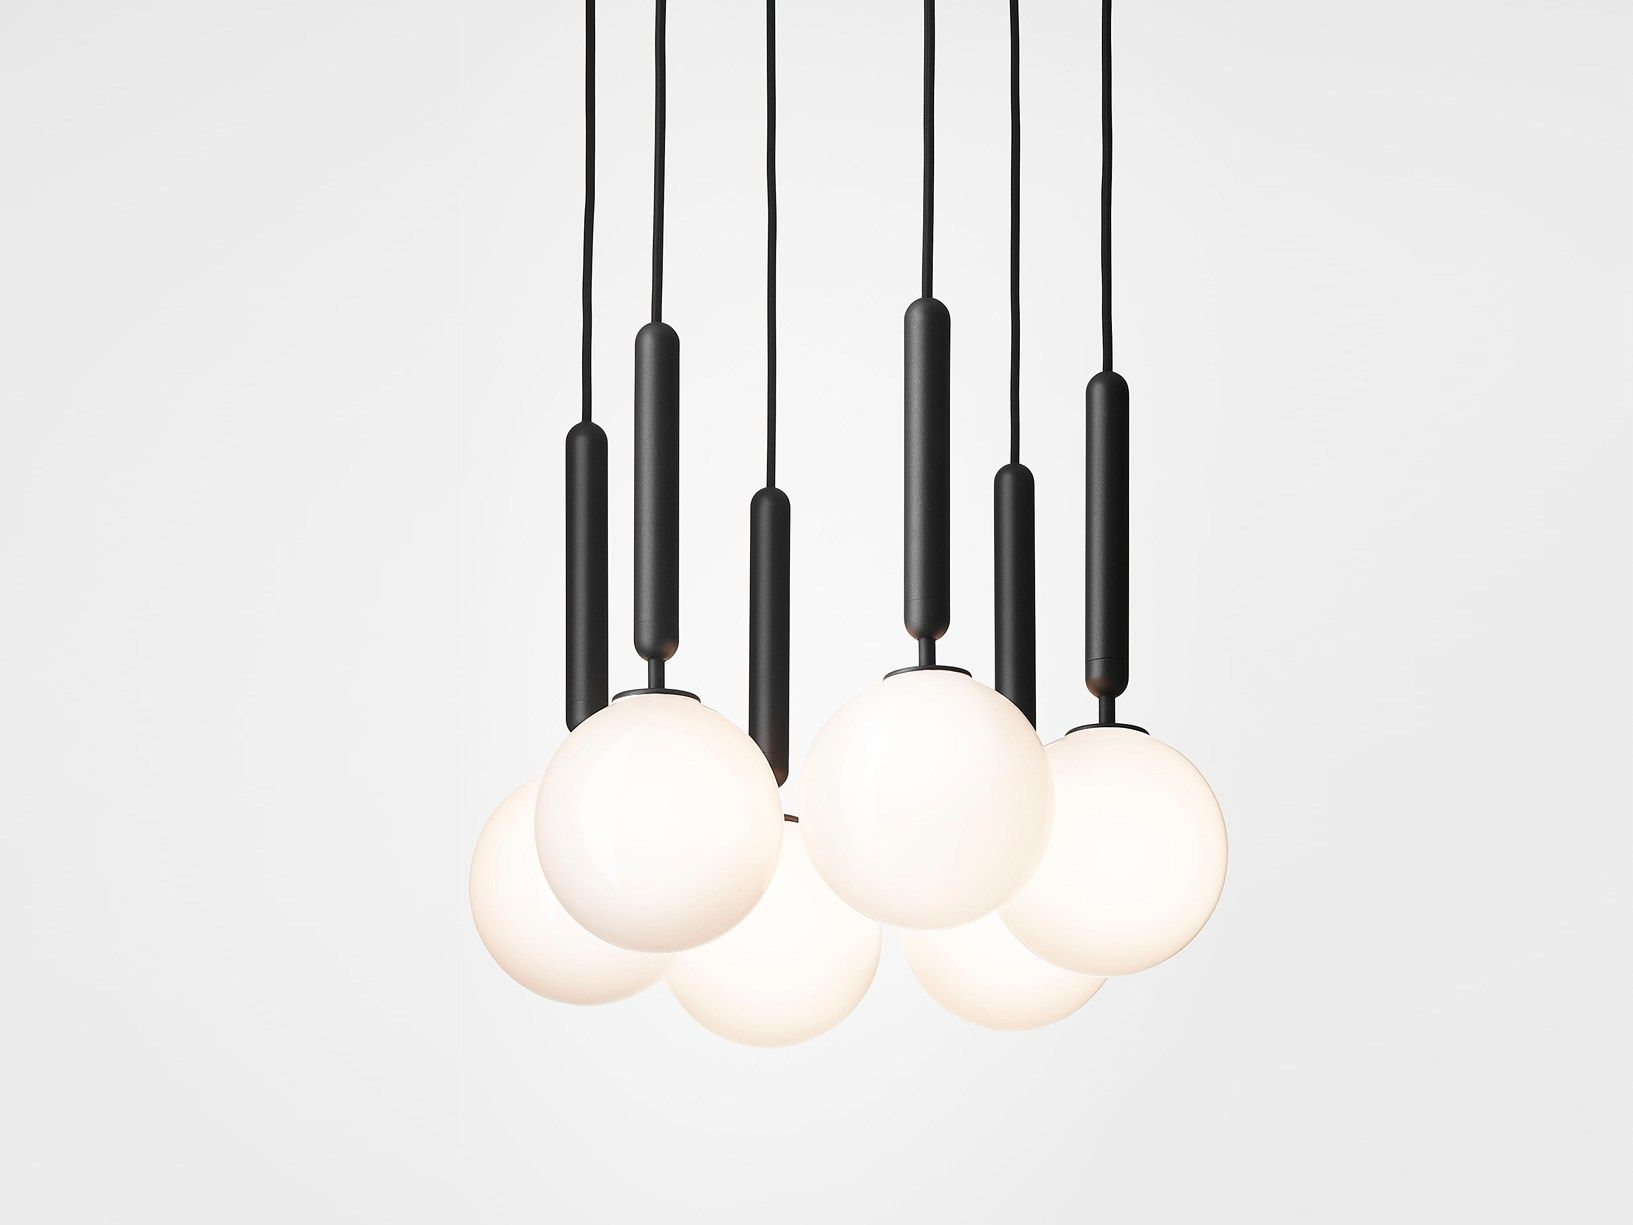 nature inspired lighting. Inspired By The Nordic Light And Riches Found In Nature Lighting H